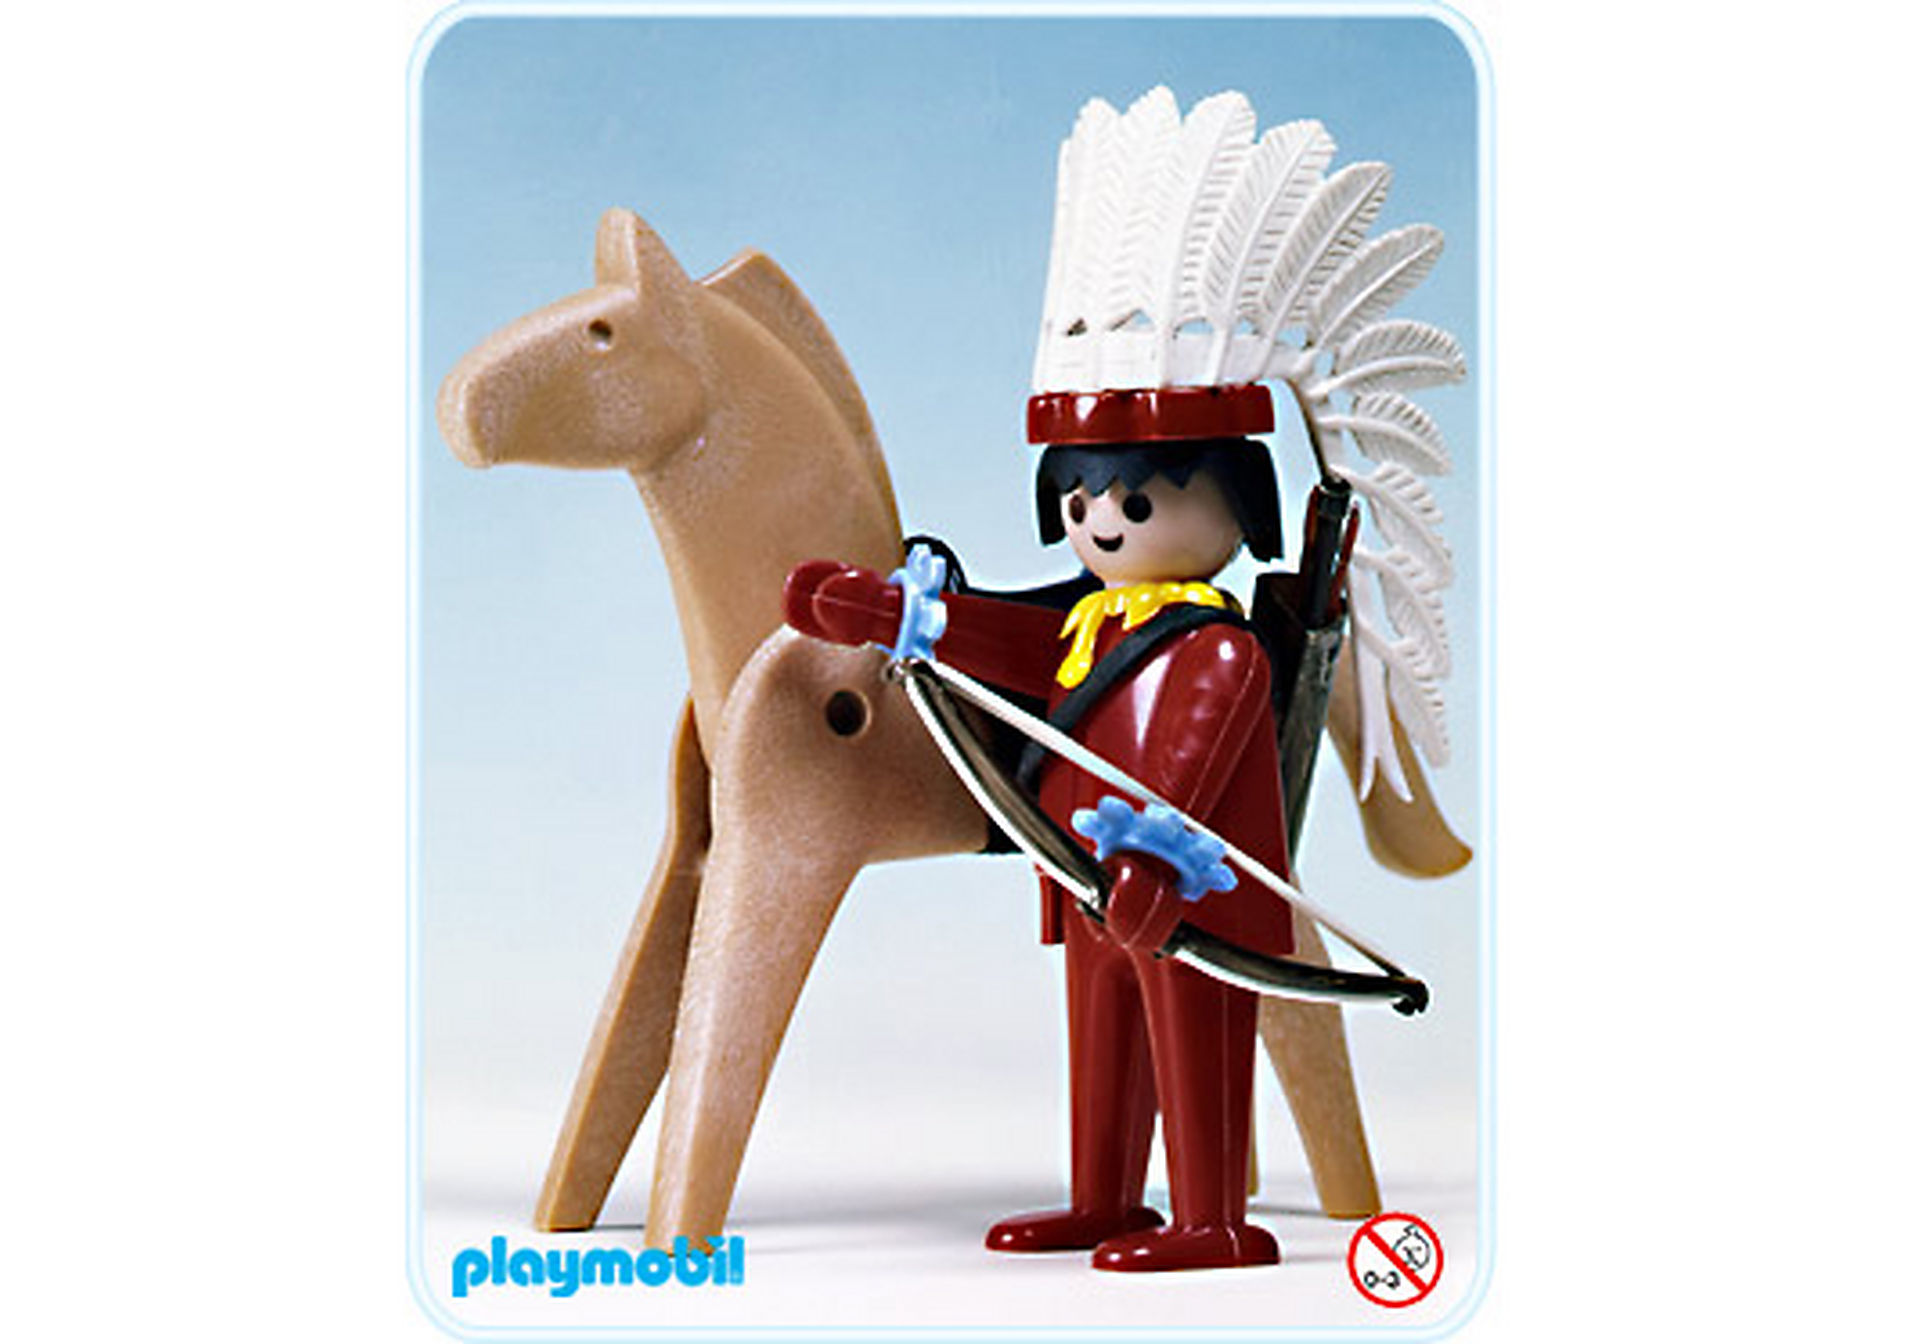 http://media.playmobil.com/i/playmobil/3351-A_product_detail/Indianer-Häuptling/Pferd